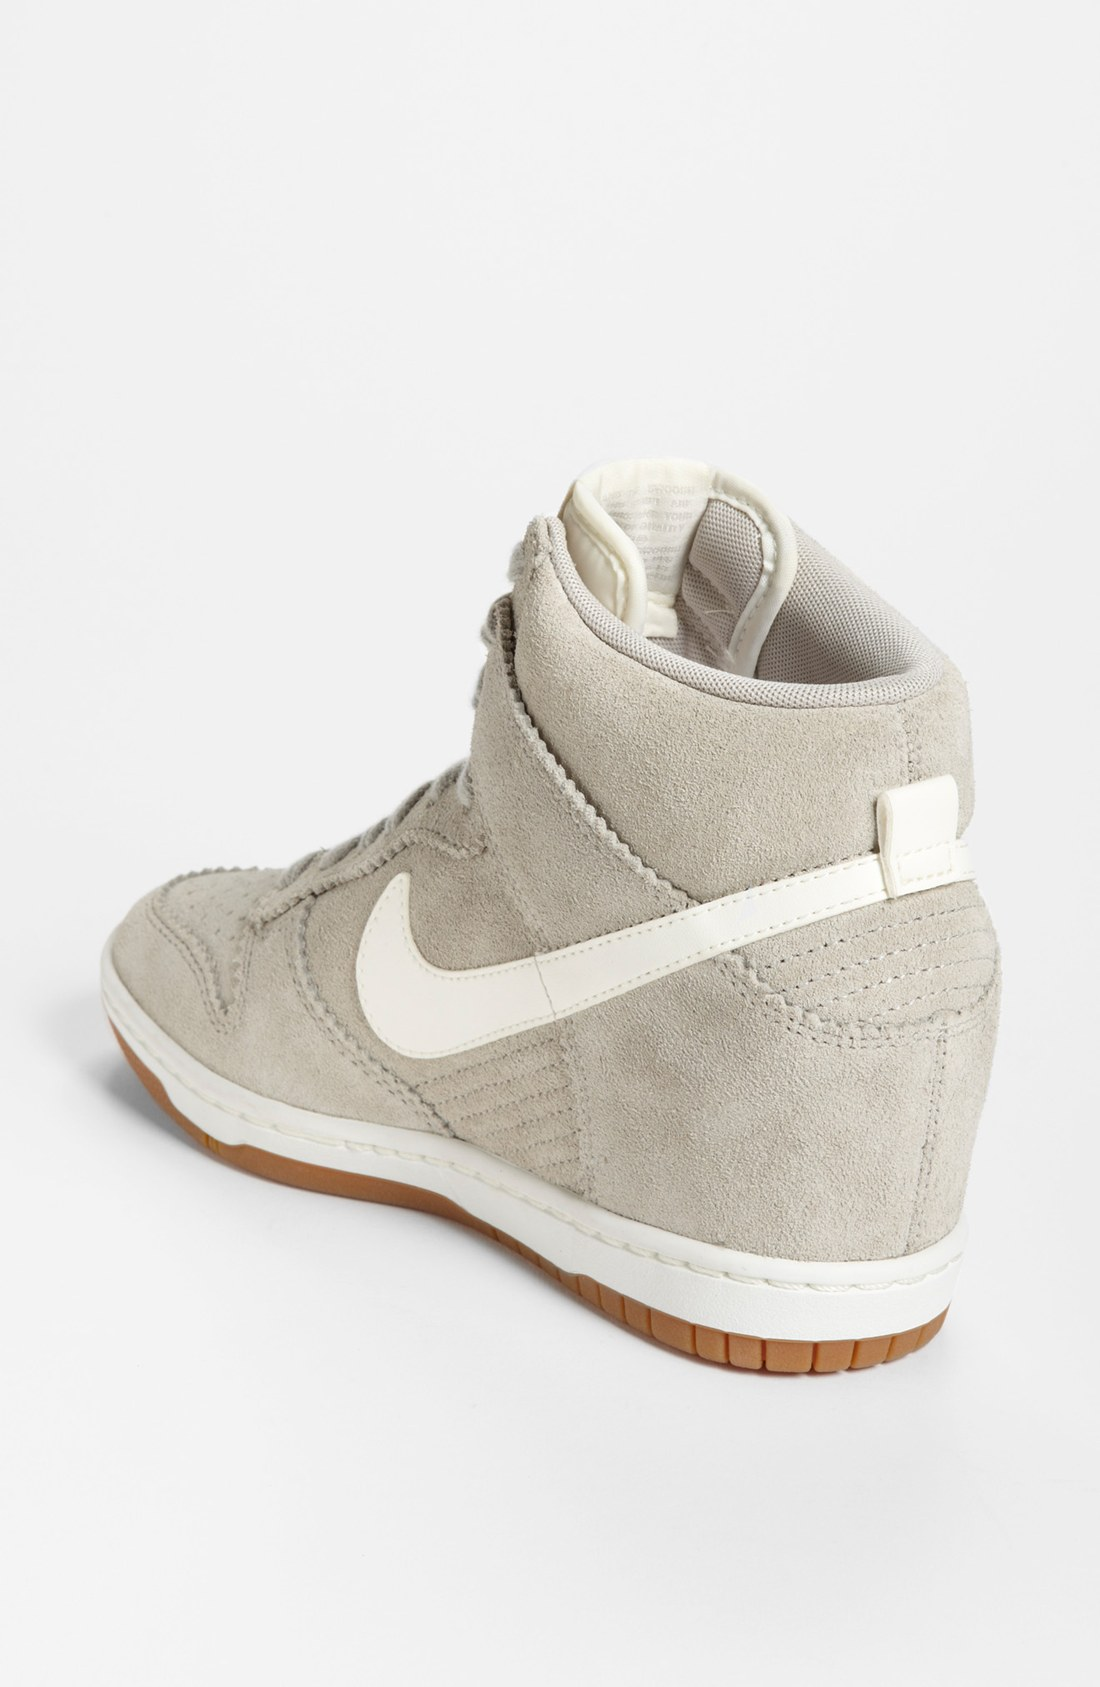 Browse the latest styles of Nike women's shoes, apparel and accessories for the streets, at the gym and more. Free shipping on thousands of styles.